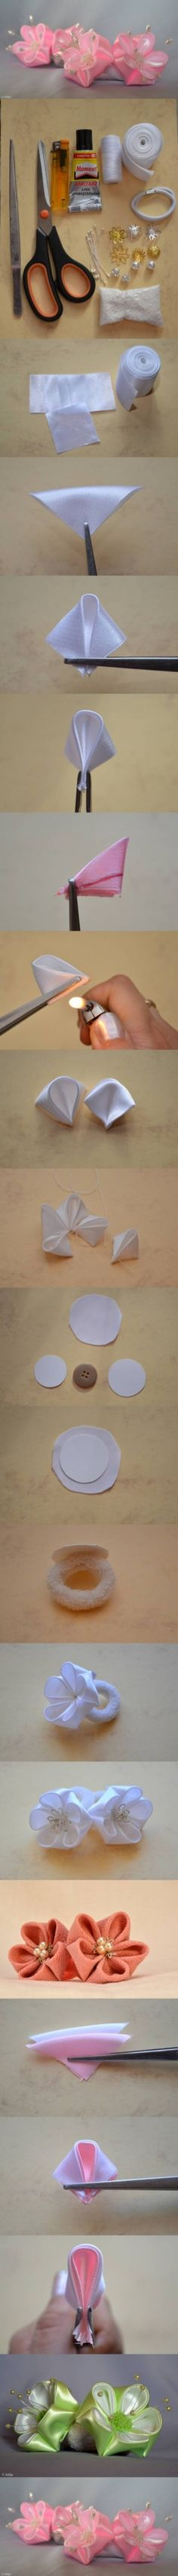 How to make beautiful Flowers of ribbon bow step by step DIY tutorial instructions , How to, how to do, diy instructions,torial instructions by Mary Smith fSesz